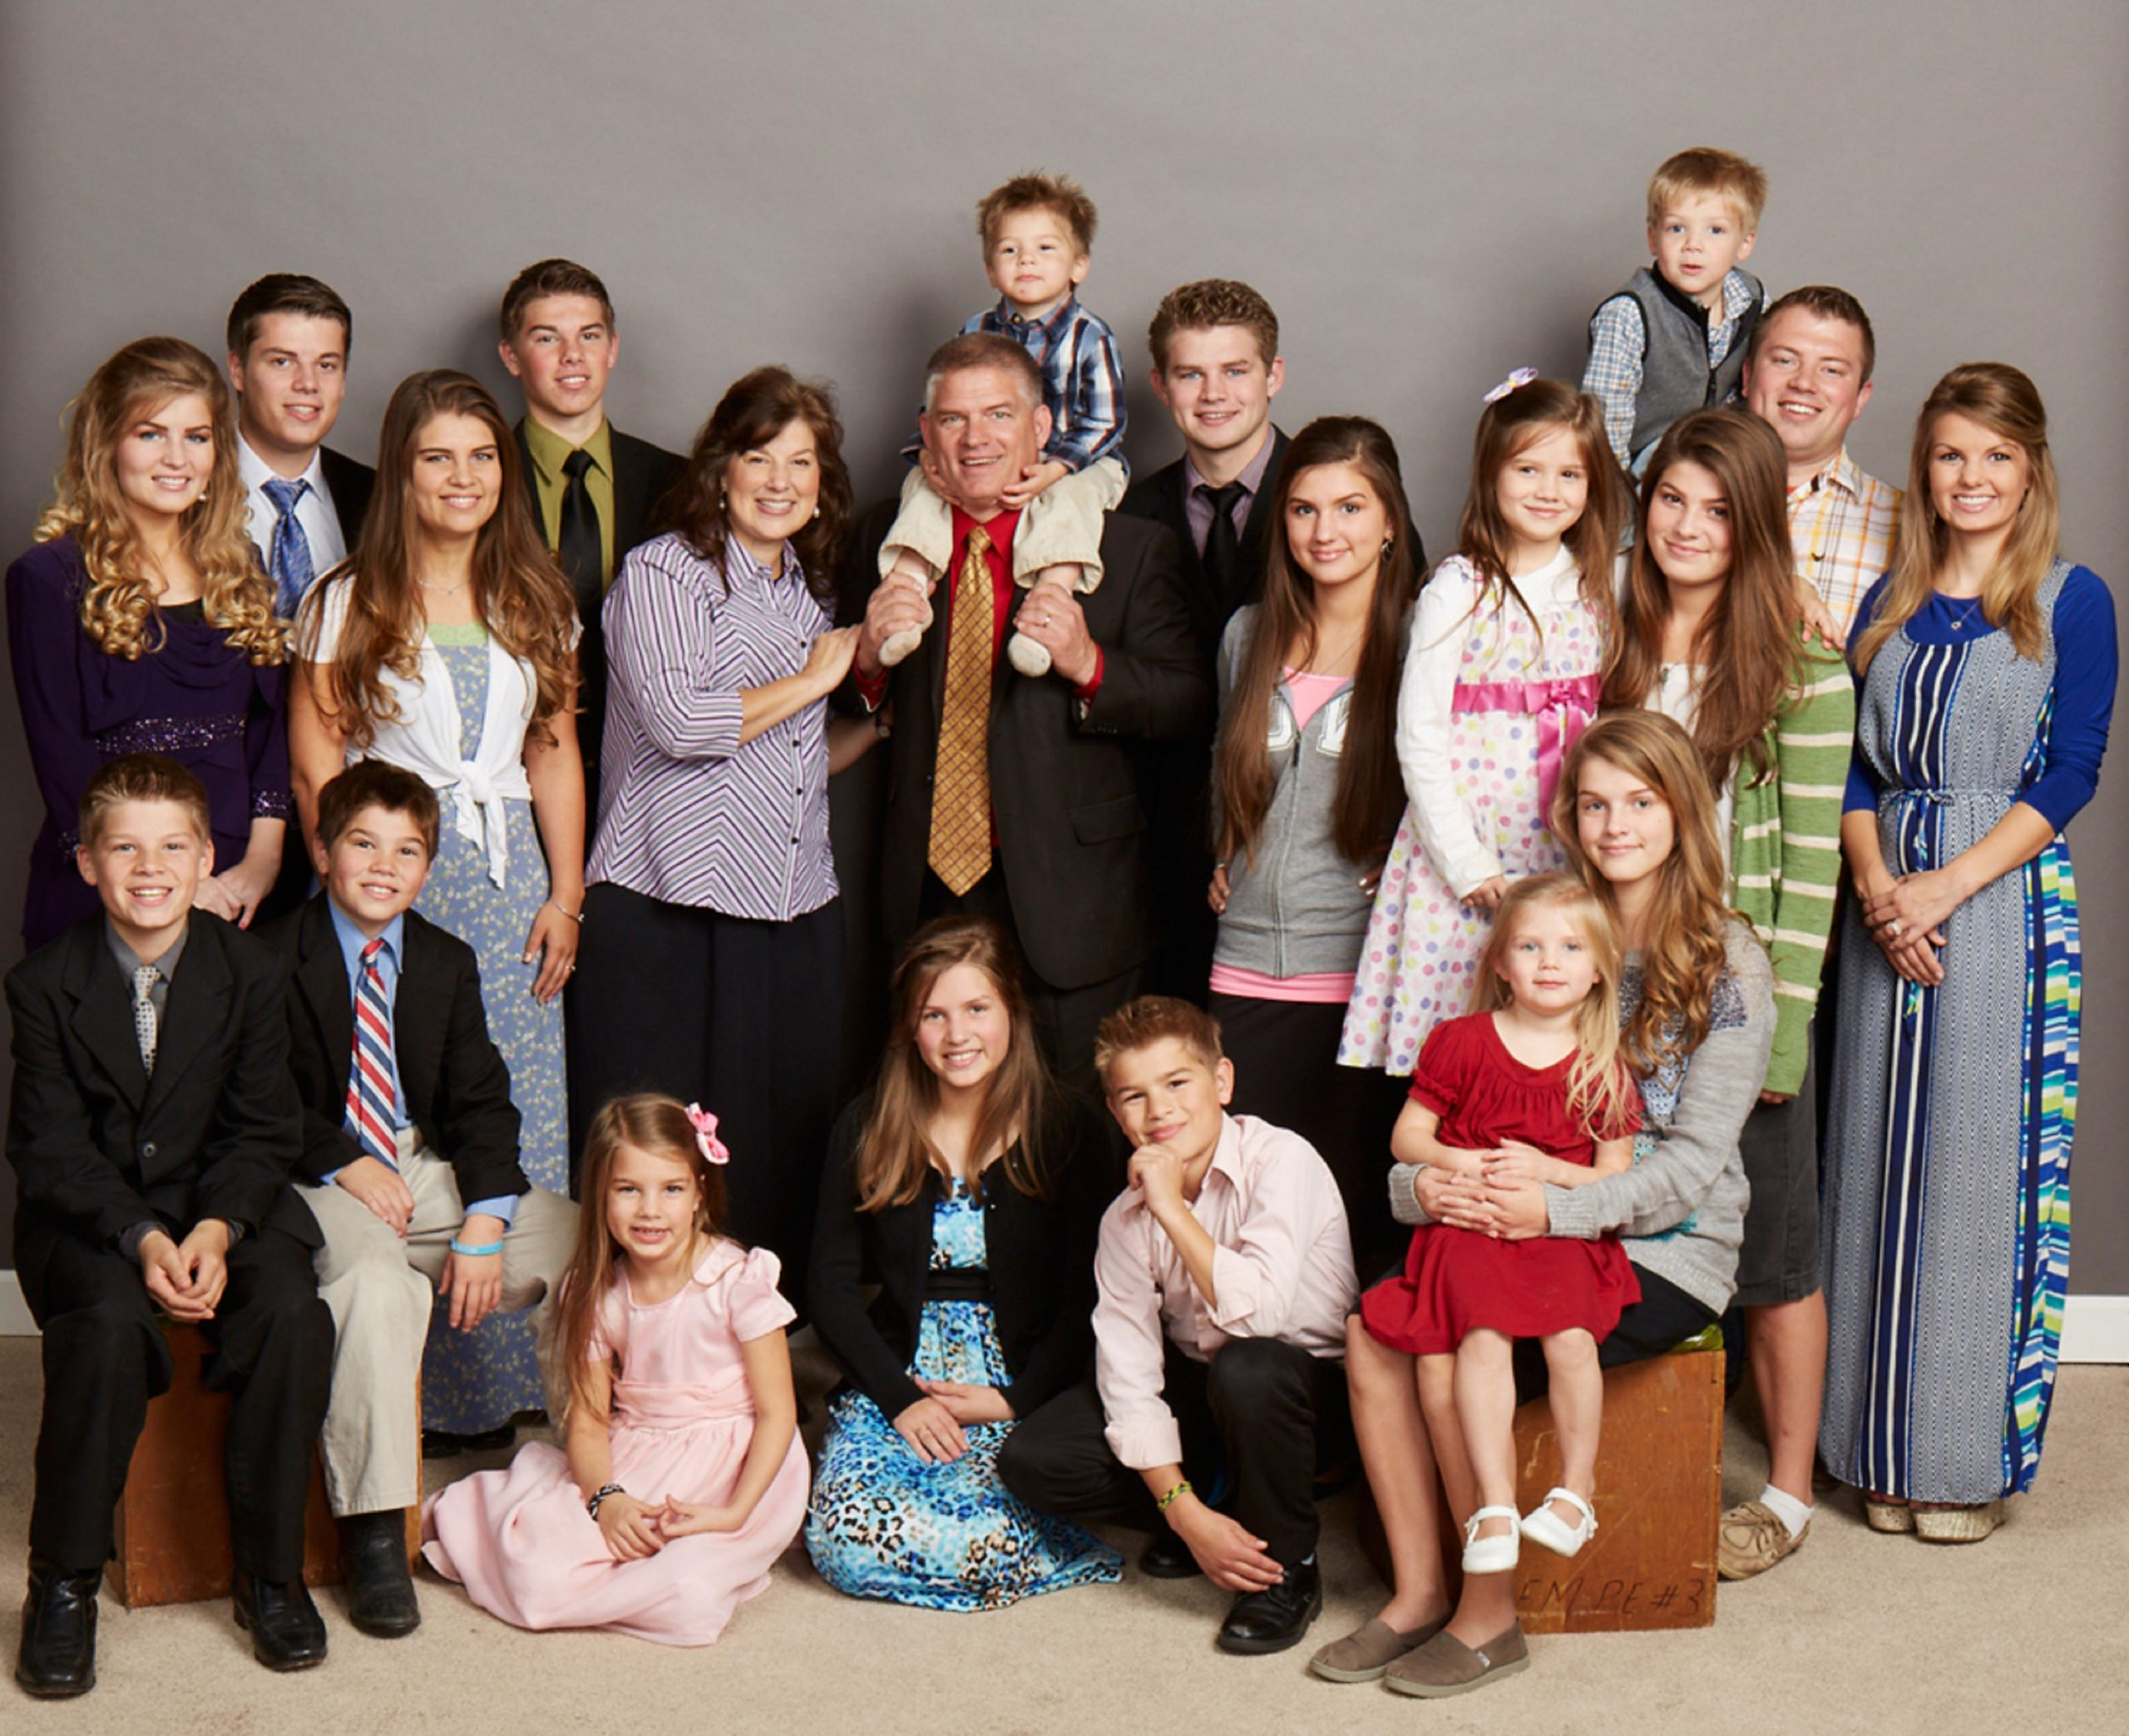 2014 group photo of the Bates family from Bringing Up Bates